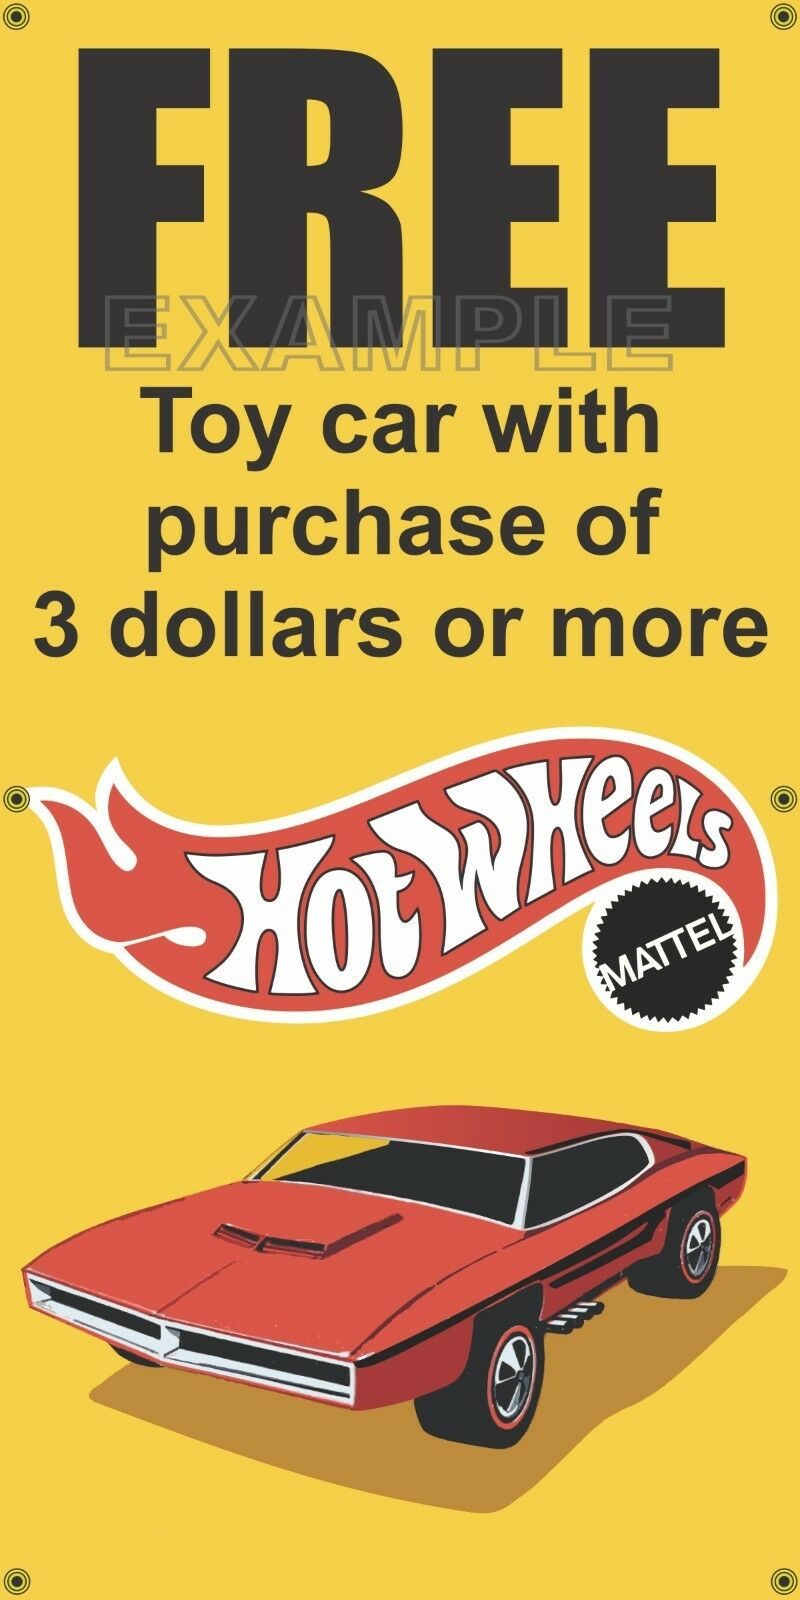 SHELL GAS STATION FREE HOT WHEELS CAR CAR CAR OLD SCHOOL SIGN REMAKE BANNER ART 2' X 4' f4f190